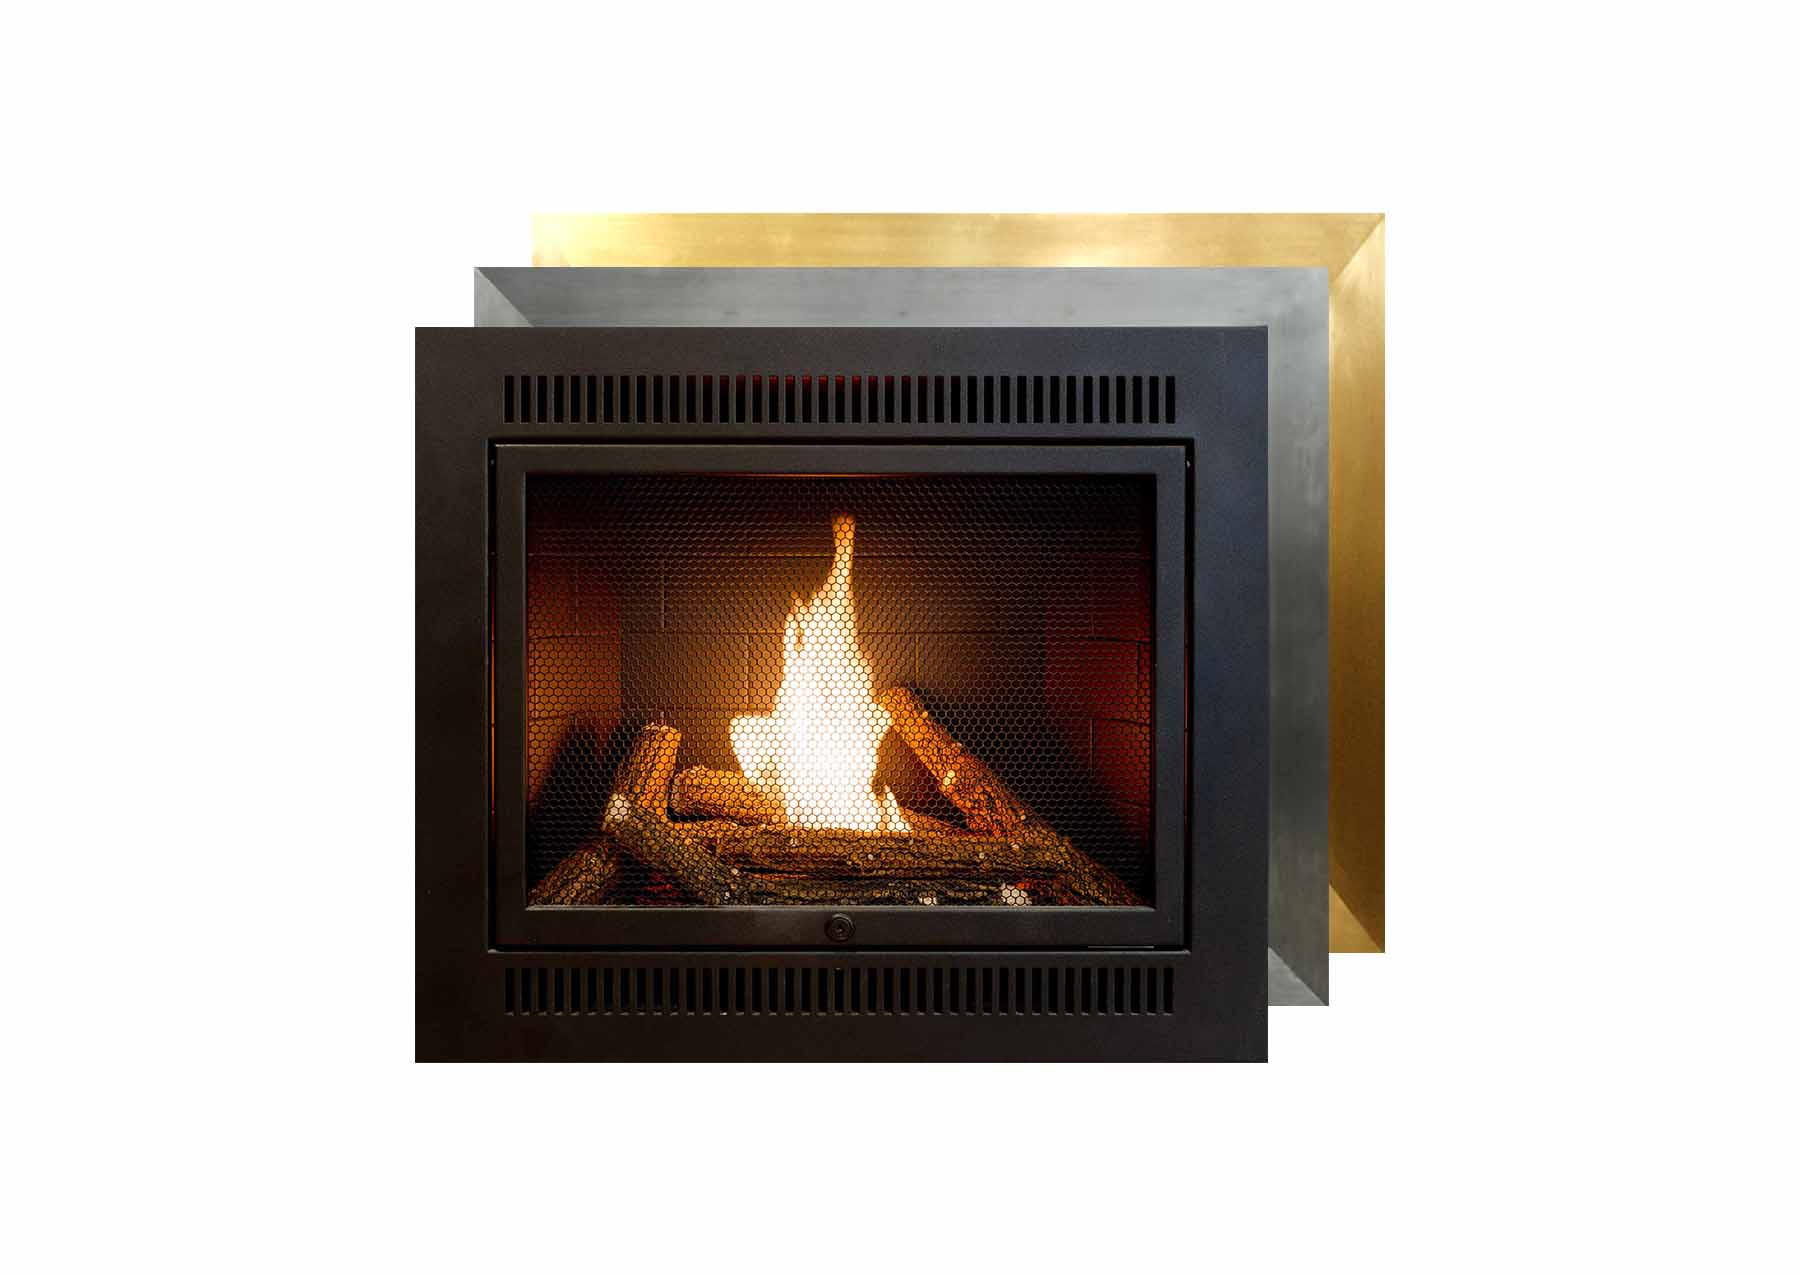 Candles For Fireplace Insert Small Fireplace Insert Small Gel Fireplaces By Hearthcabinet